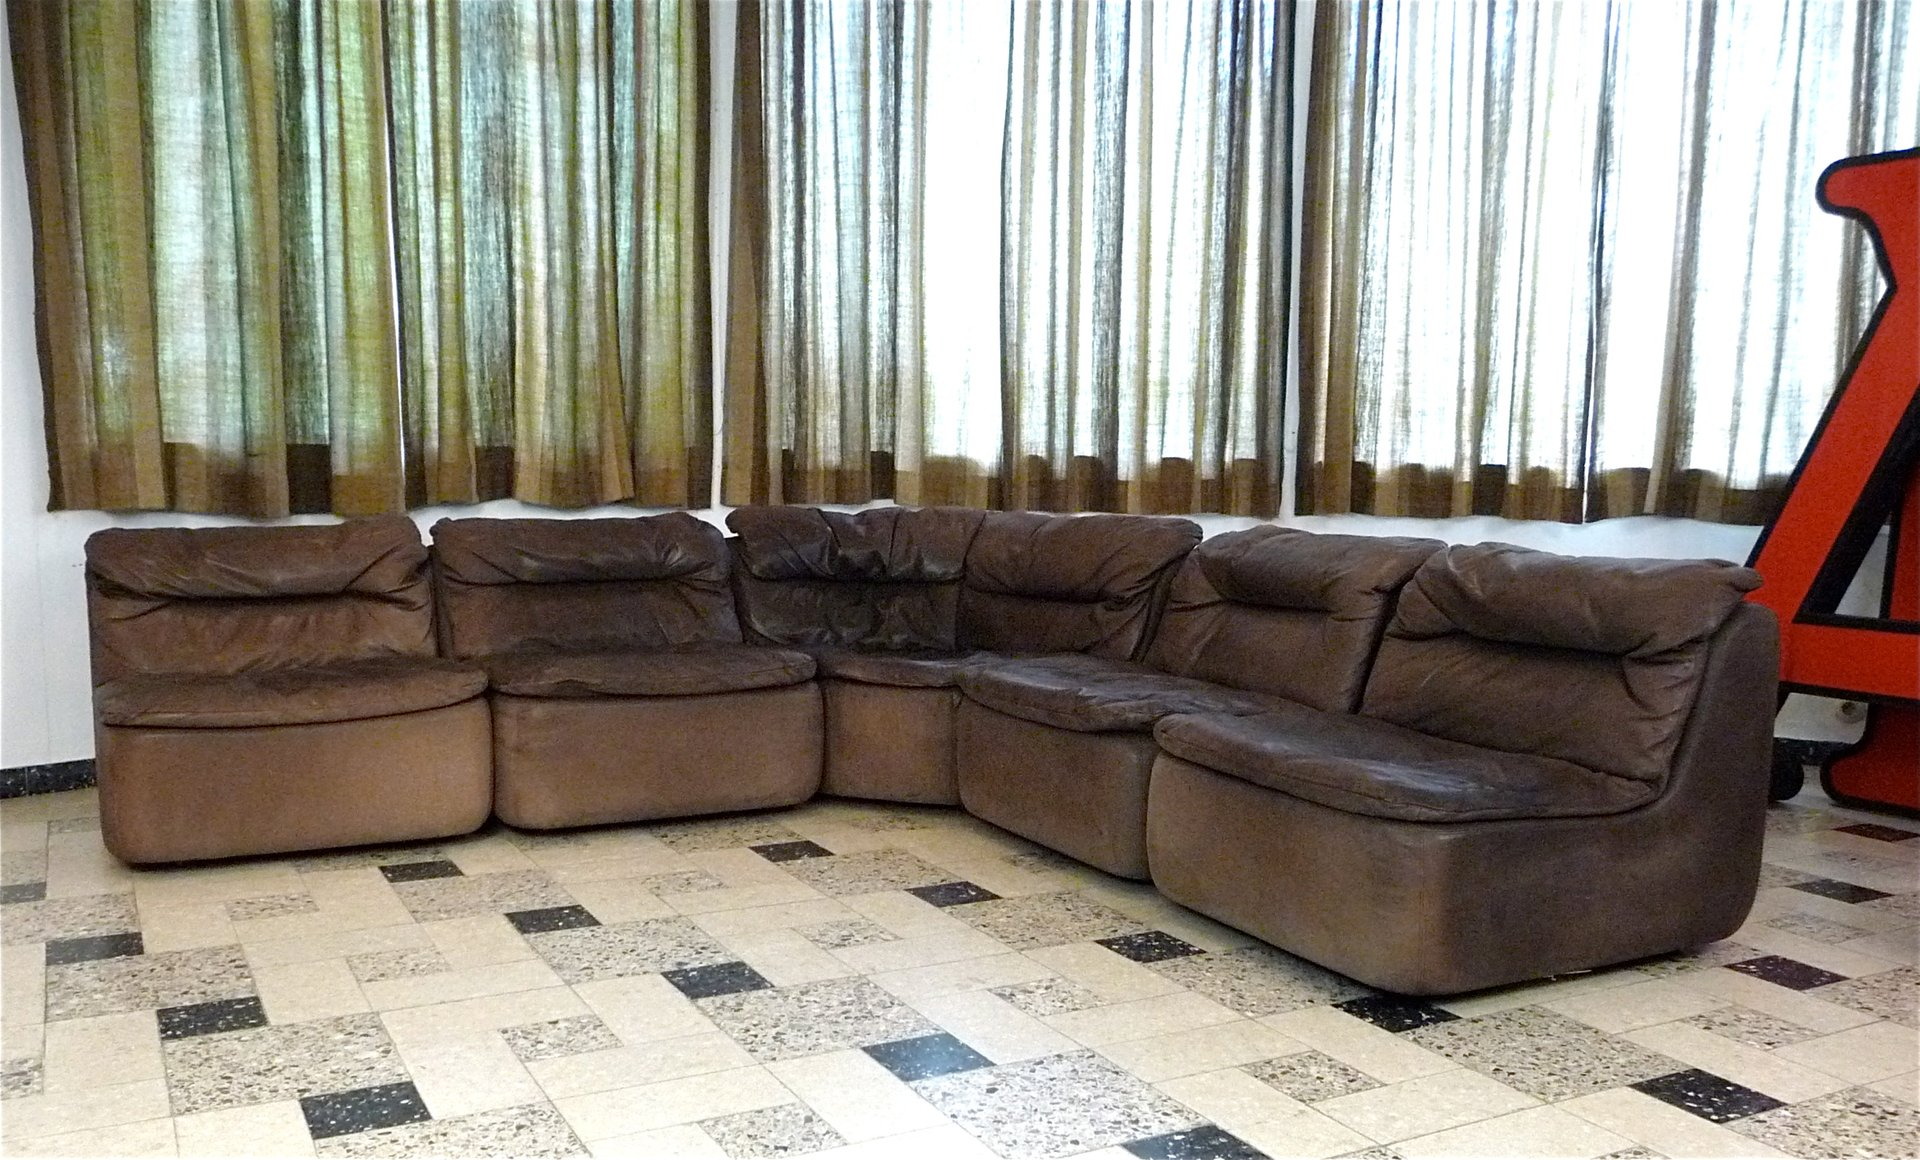 Curved Sectional Corner Leather Sofa By Friedrich Hill For Walter Knoll 1970s